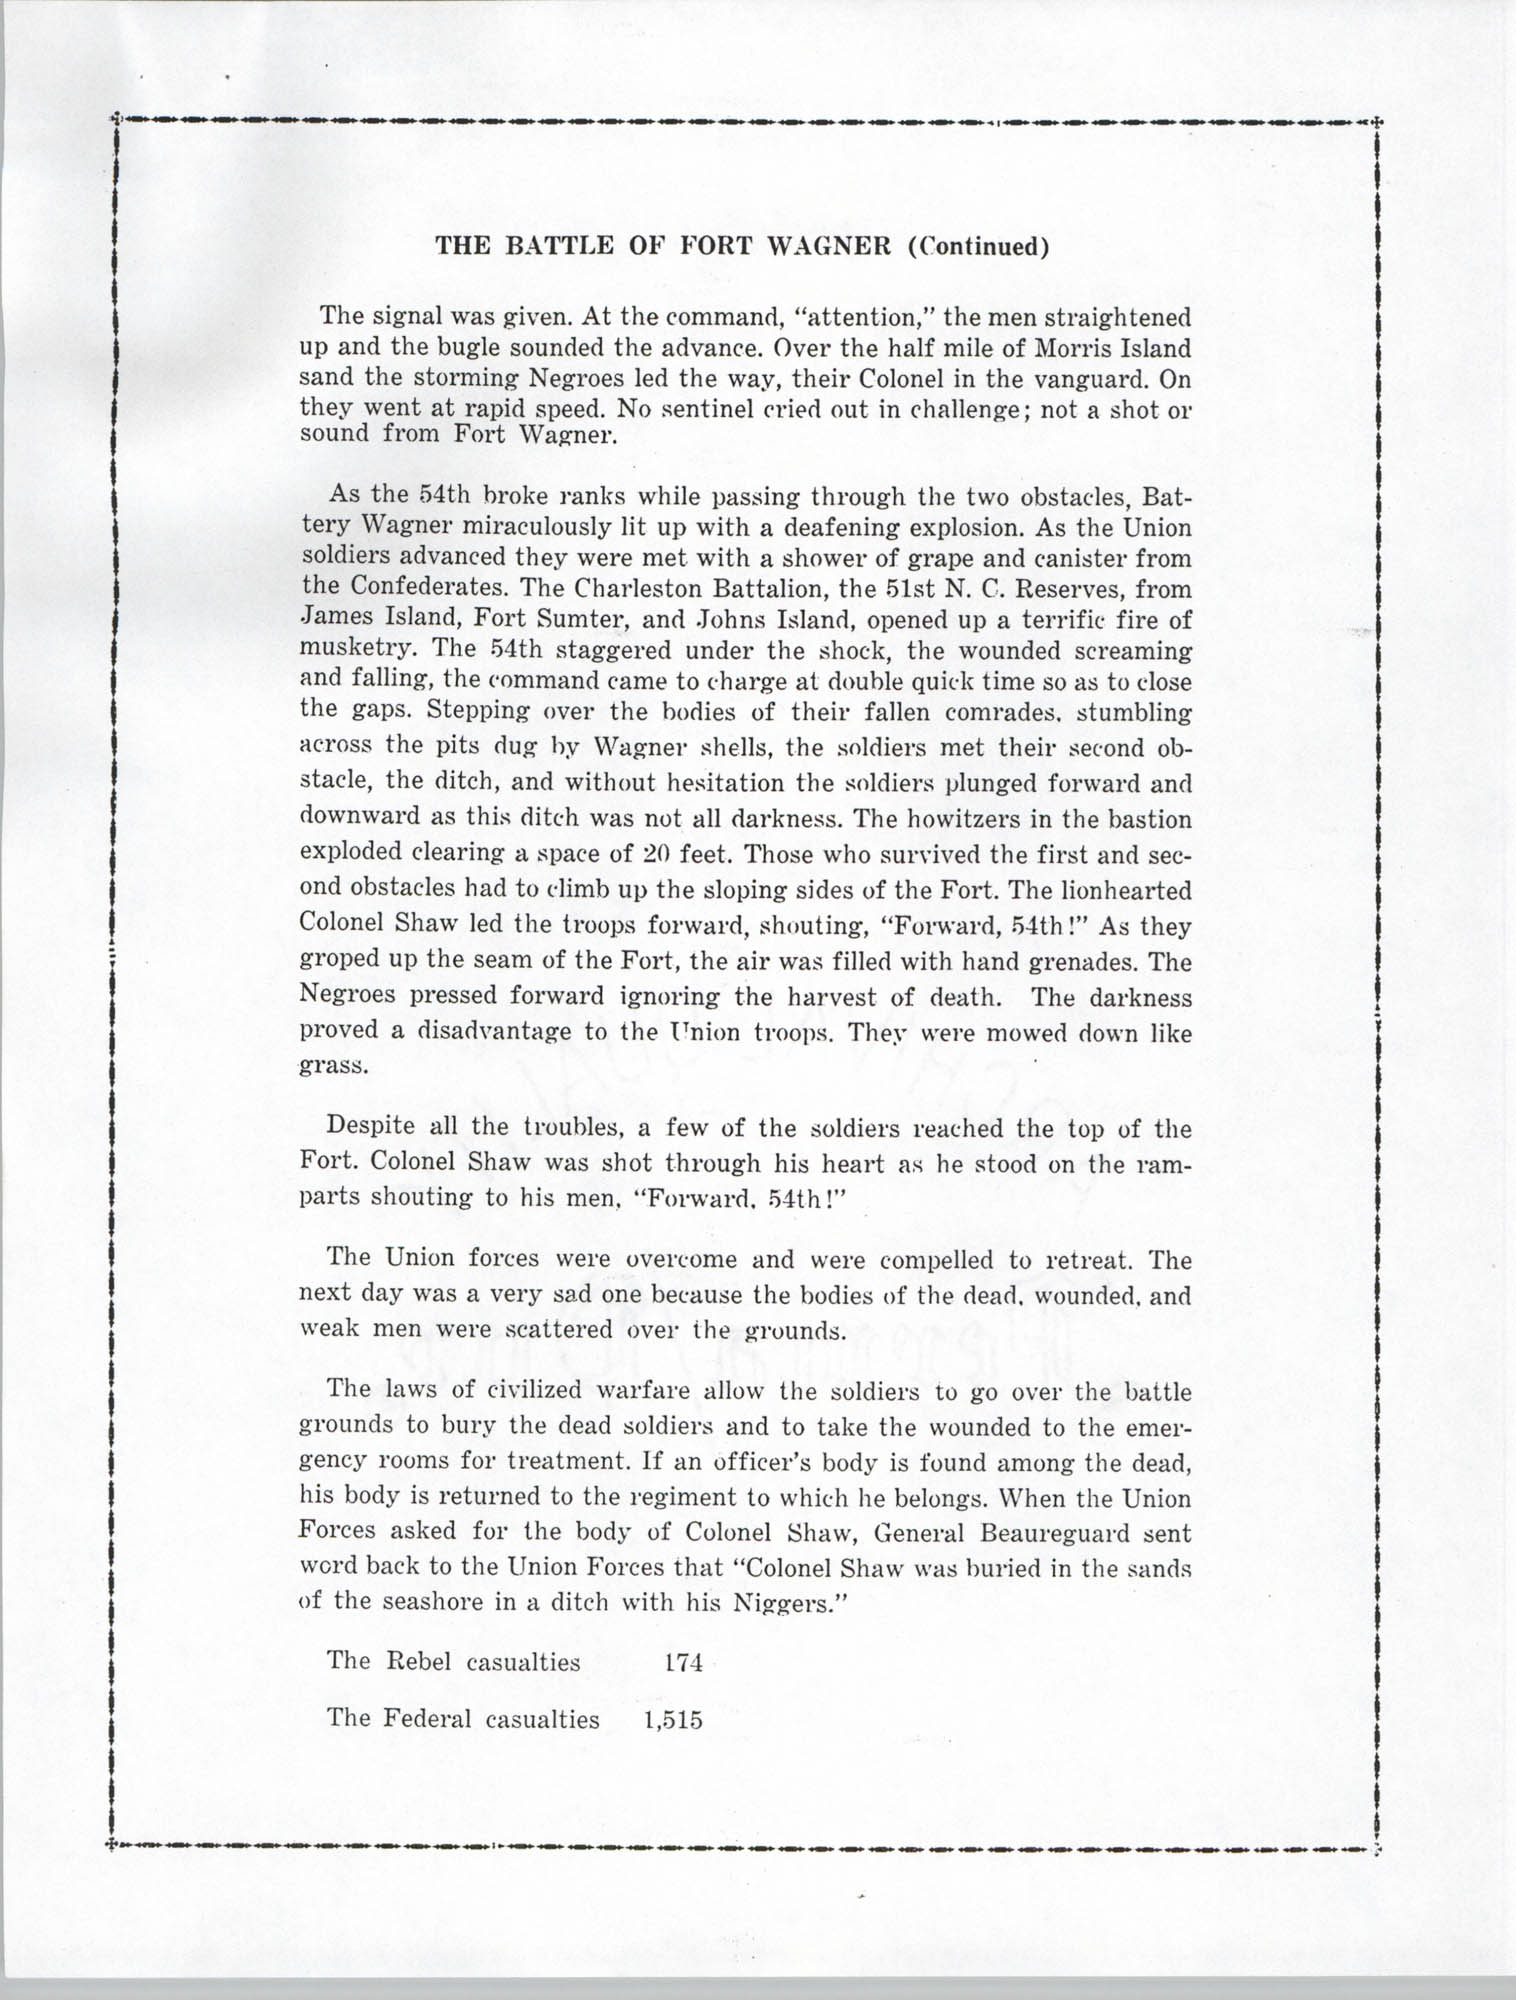 Ninety-Ninth Anniversary of the Battle of Fort Wagner Program, Page 6